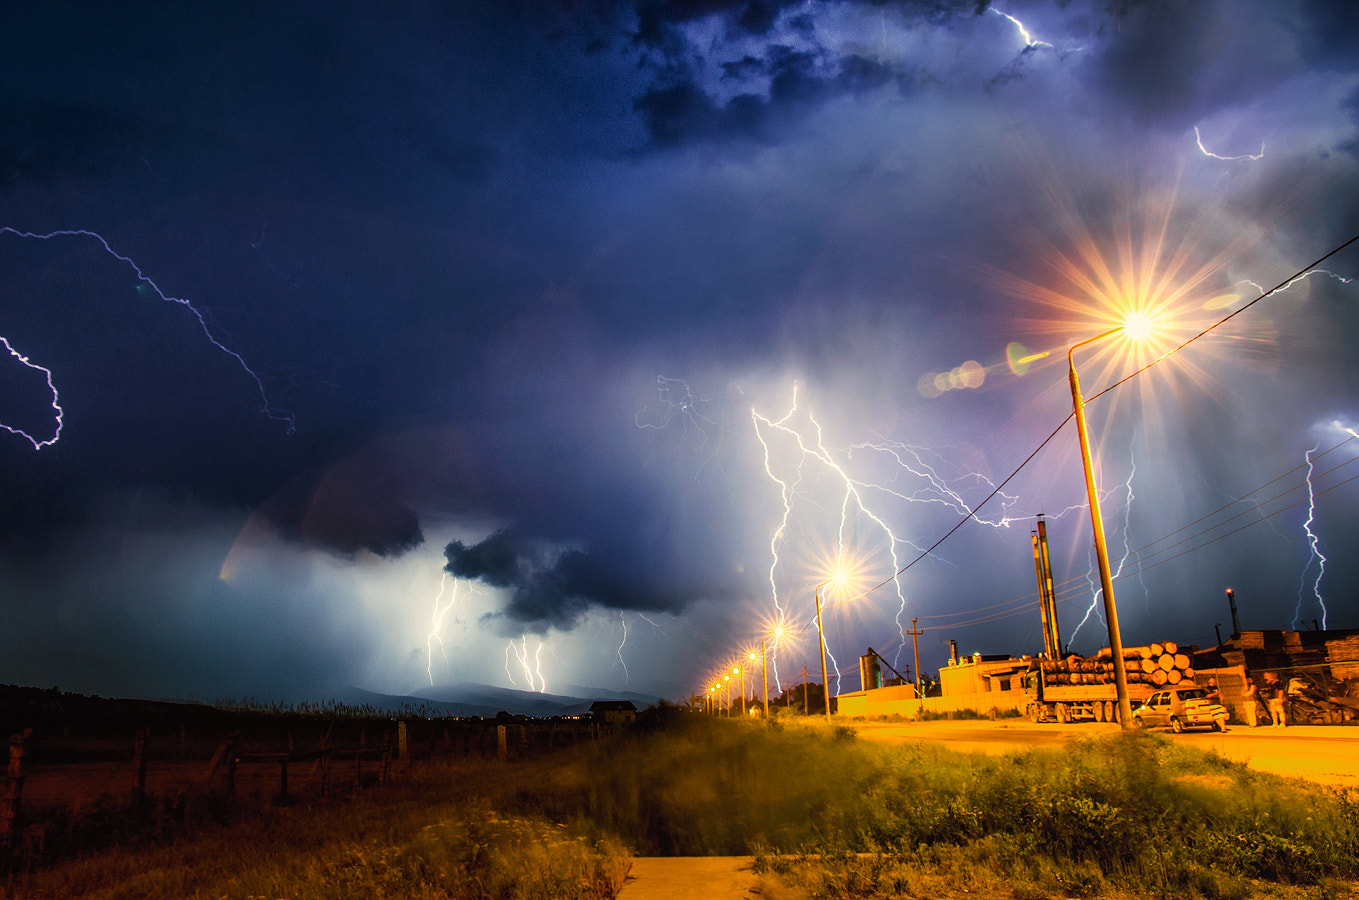 Photograph Thunderstorm by Mogan Andrei on 500px